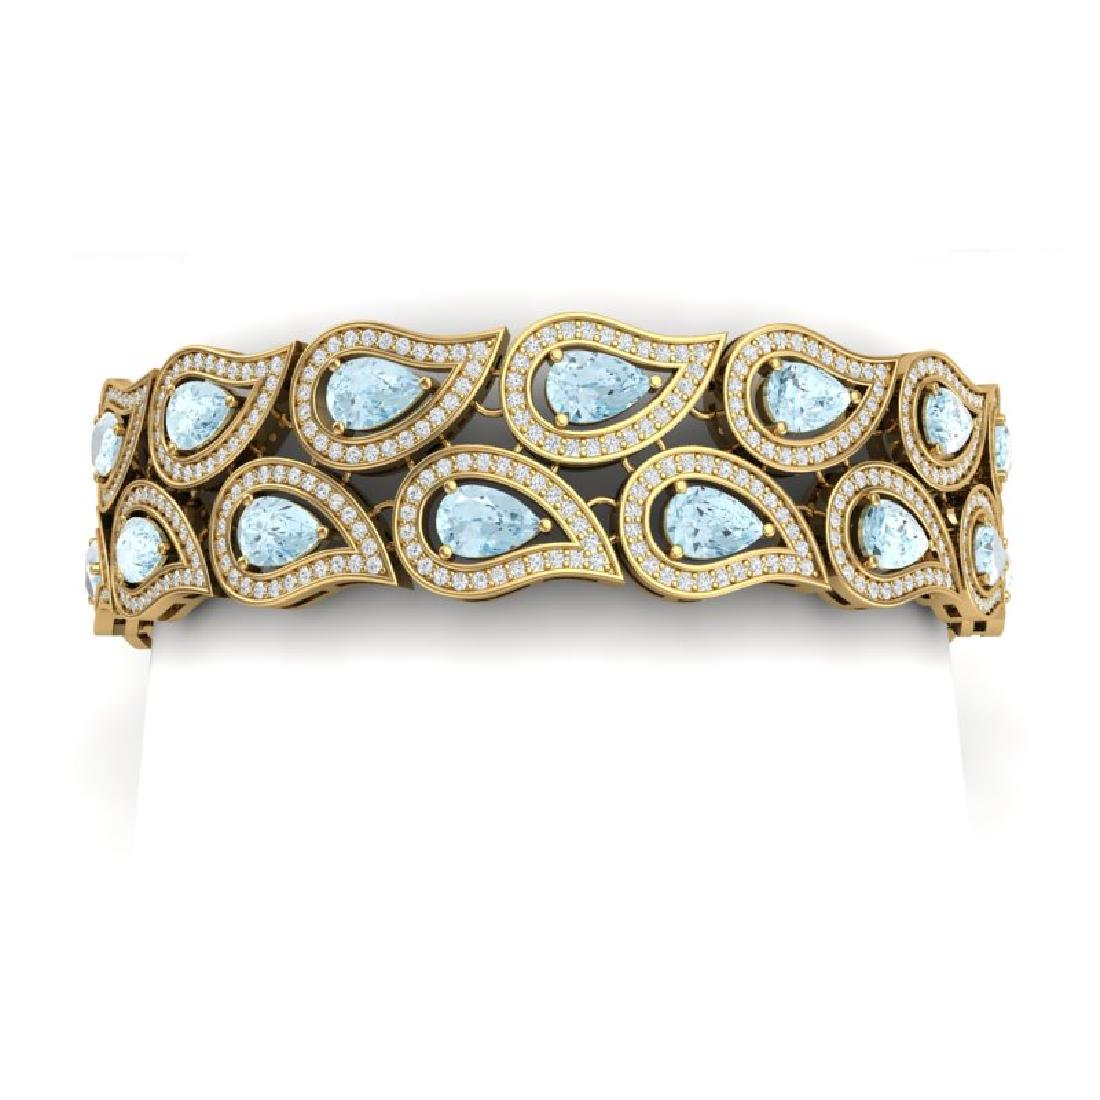 19.62 CTW Royalty Sky Topaz & VS Diamond Bracelet 18K